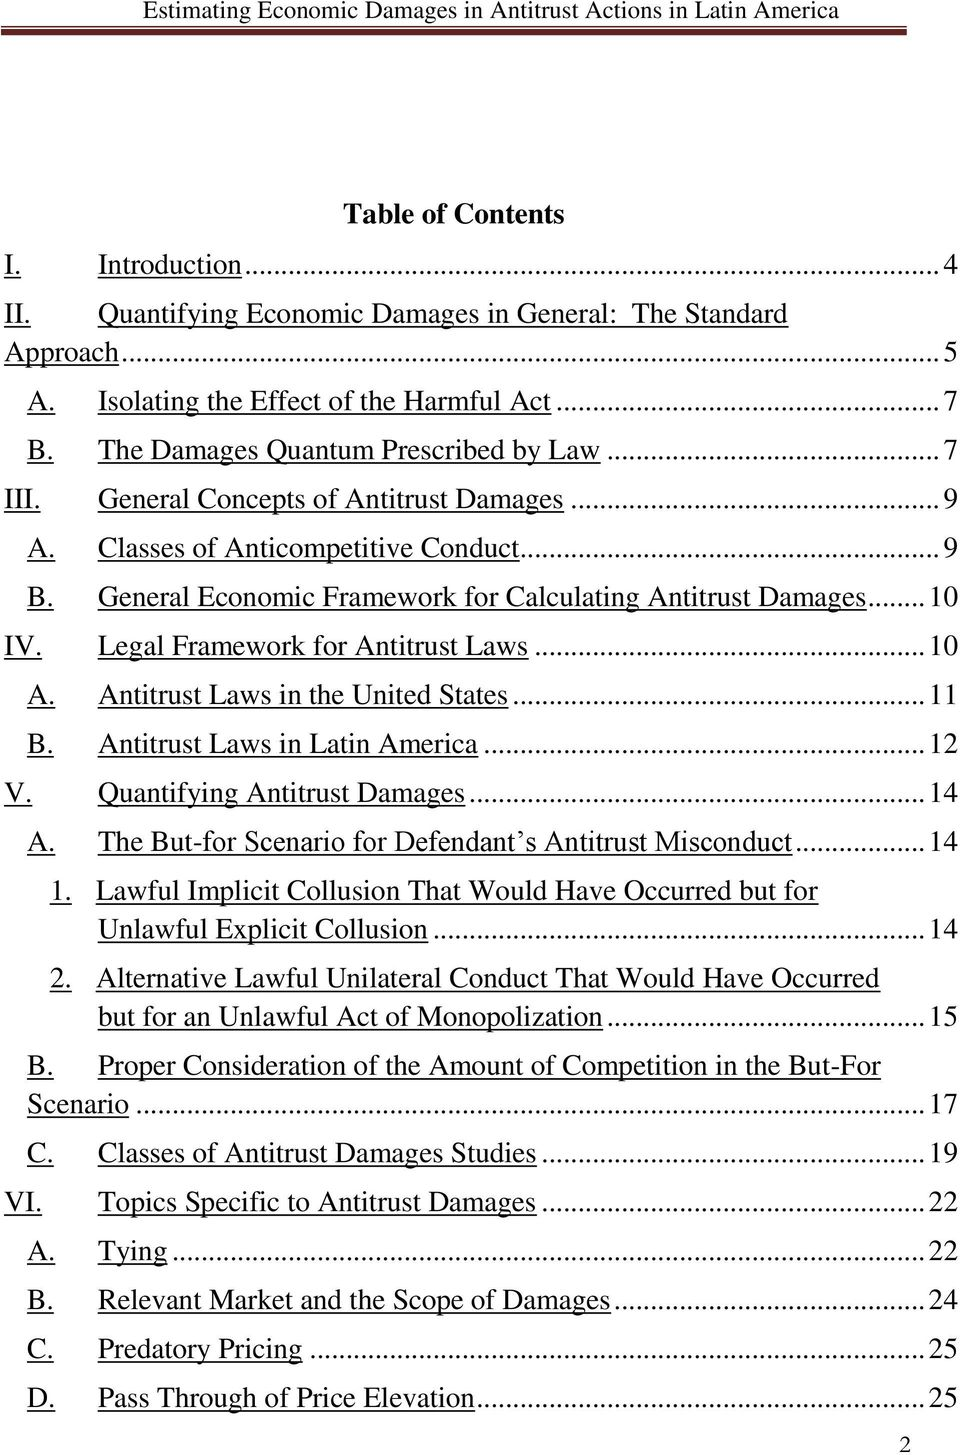 Legal Framework for Antitrust Laws... 10 A. Antitrust Laws in the United States... 11 B. Antitrust Laws in Latin America... 12 V. Quantifying Antitrust Damages... 14 A.